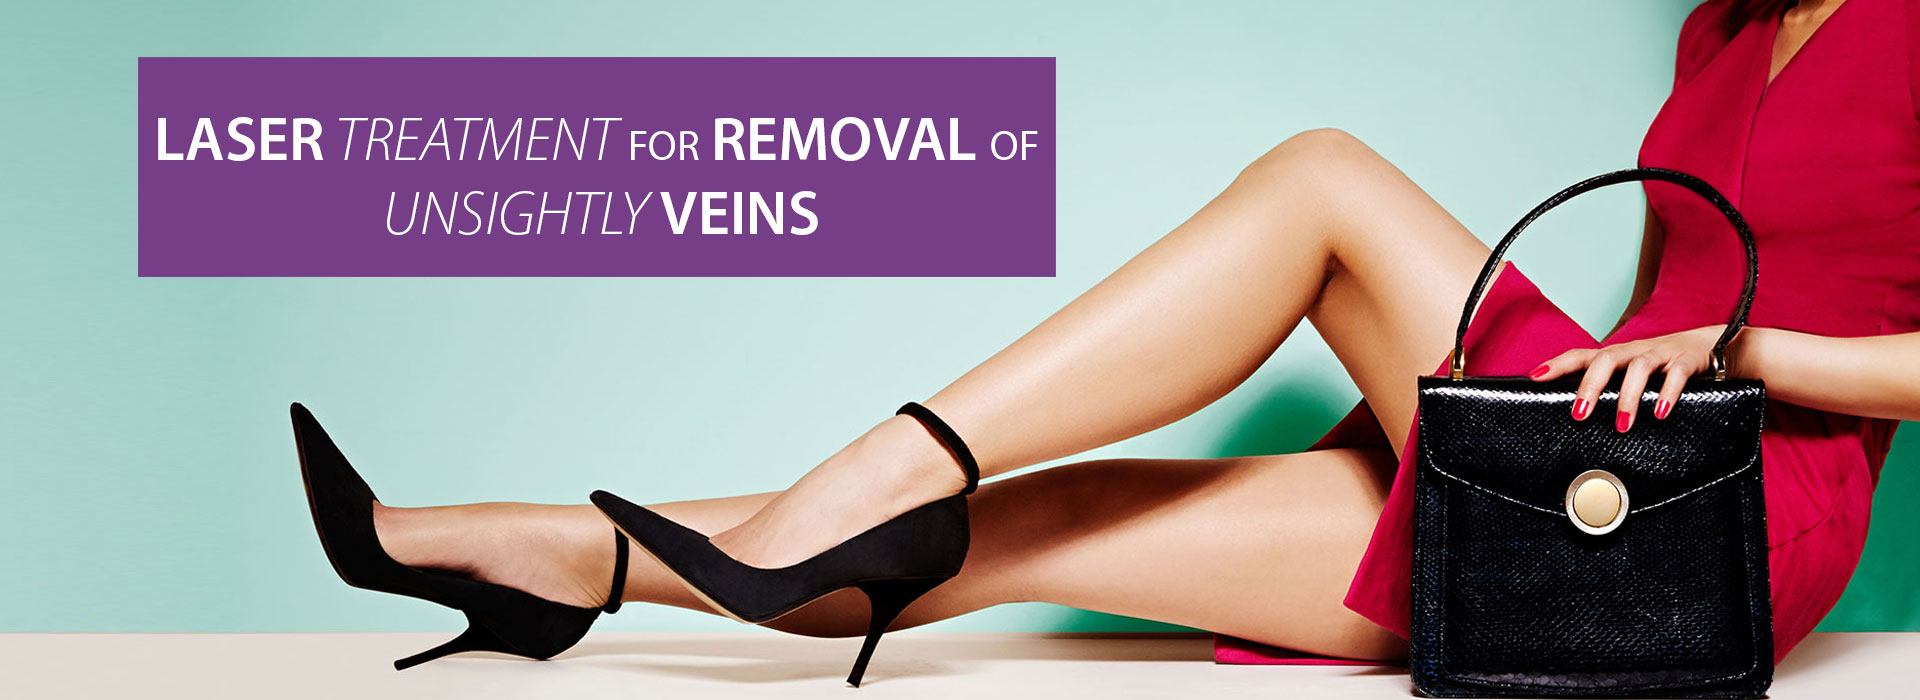 laser-treatment-removal-unsightly-veins-lake-norman-aesthetics-concierge-med-spa-laser-center-mooresville-nc-28117